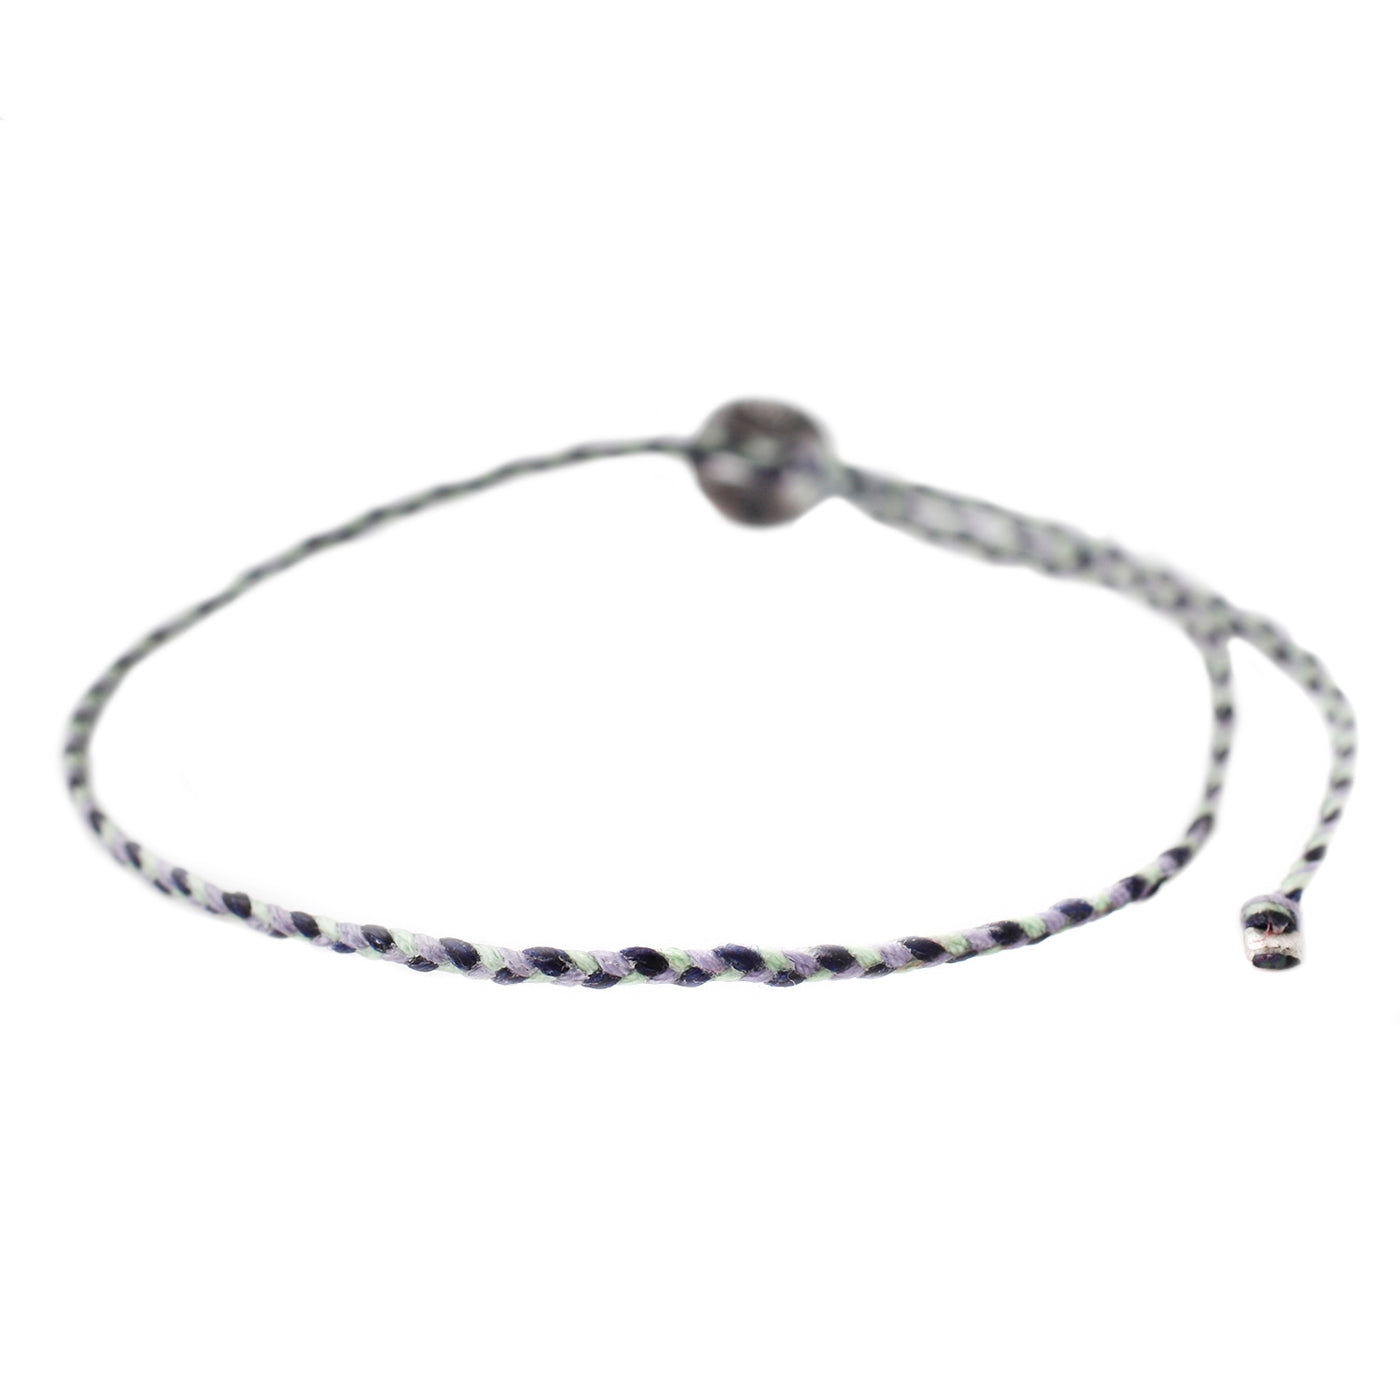 Scosha Braid Friendship Bracelet